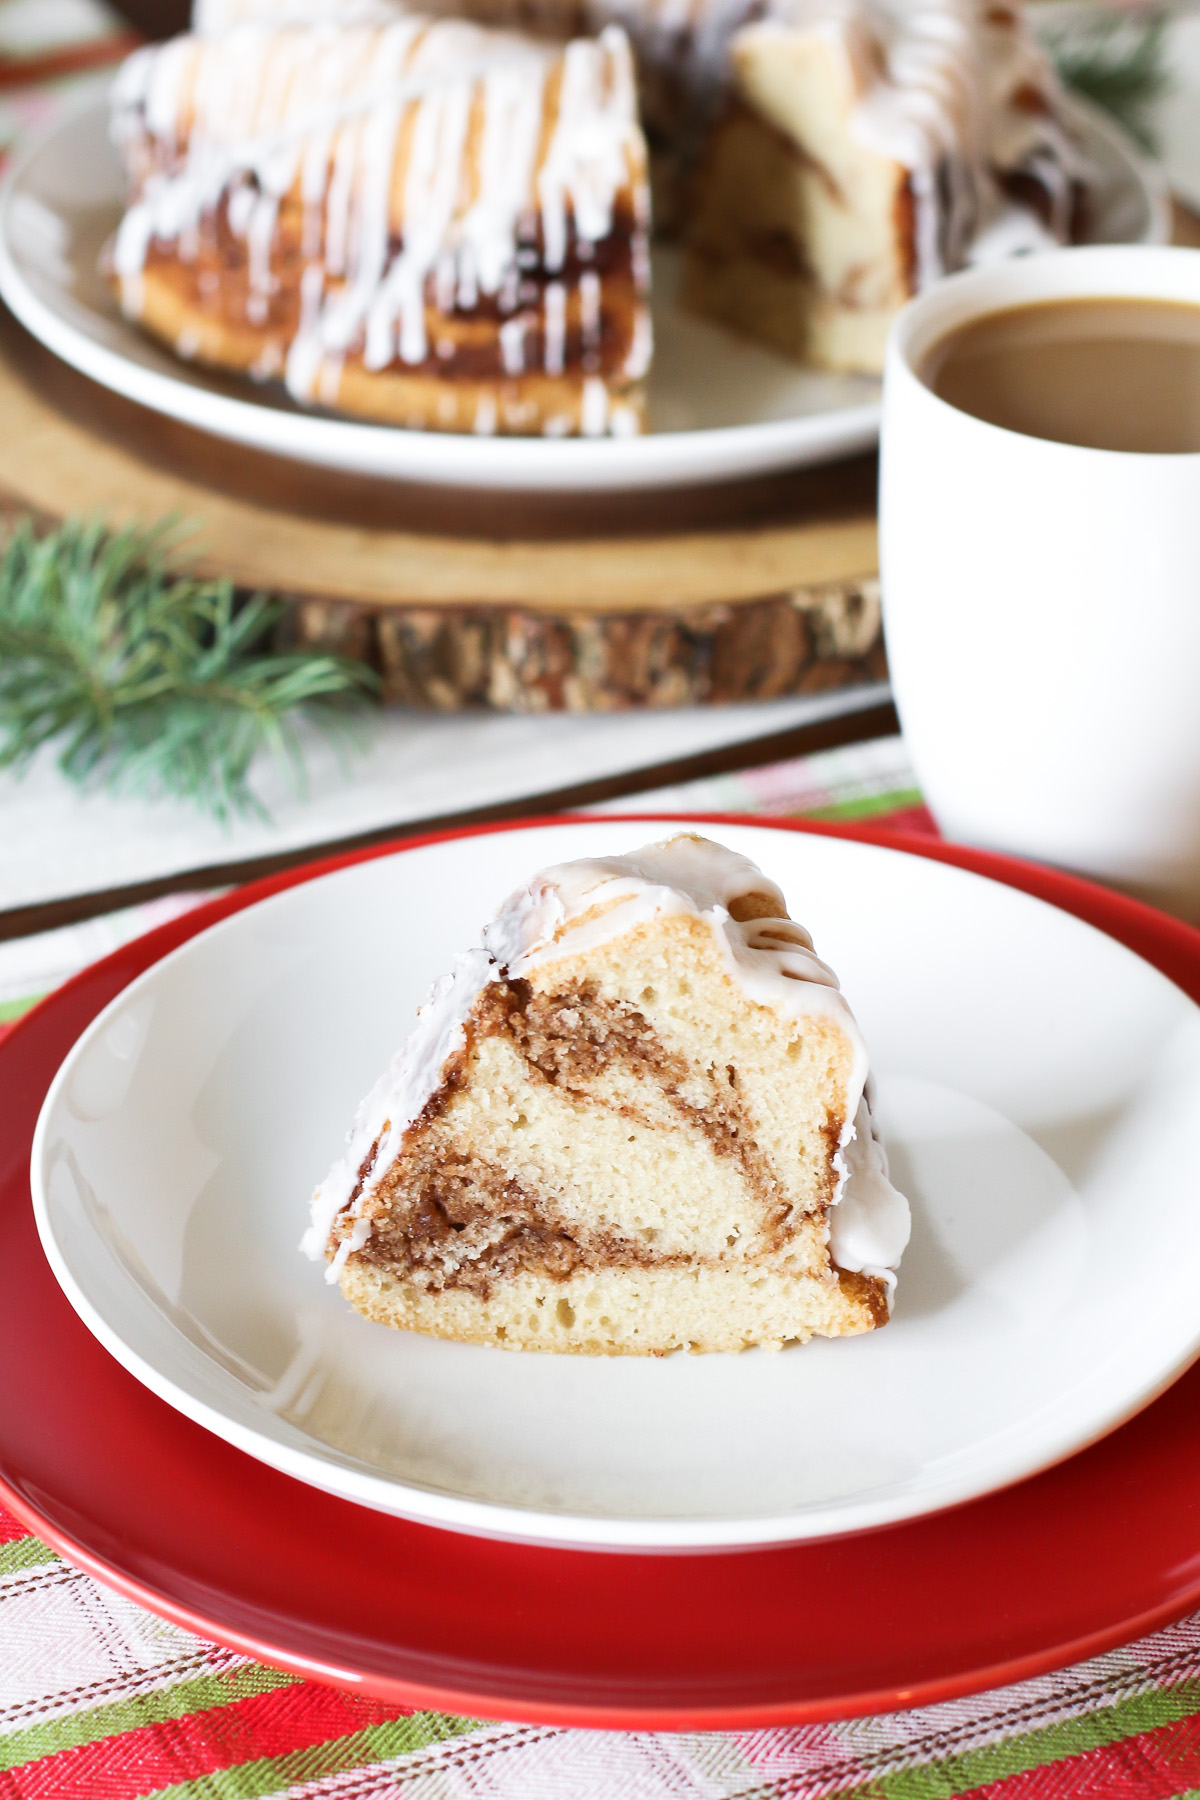 Gluten Free Vegan Cinnamon Roll Coffee Cake. Layers of light vanilla cake and cinnamon sugar, baked to perfection. That simple glaze over the top is a must!